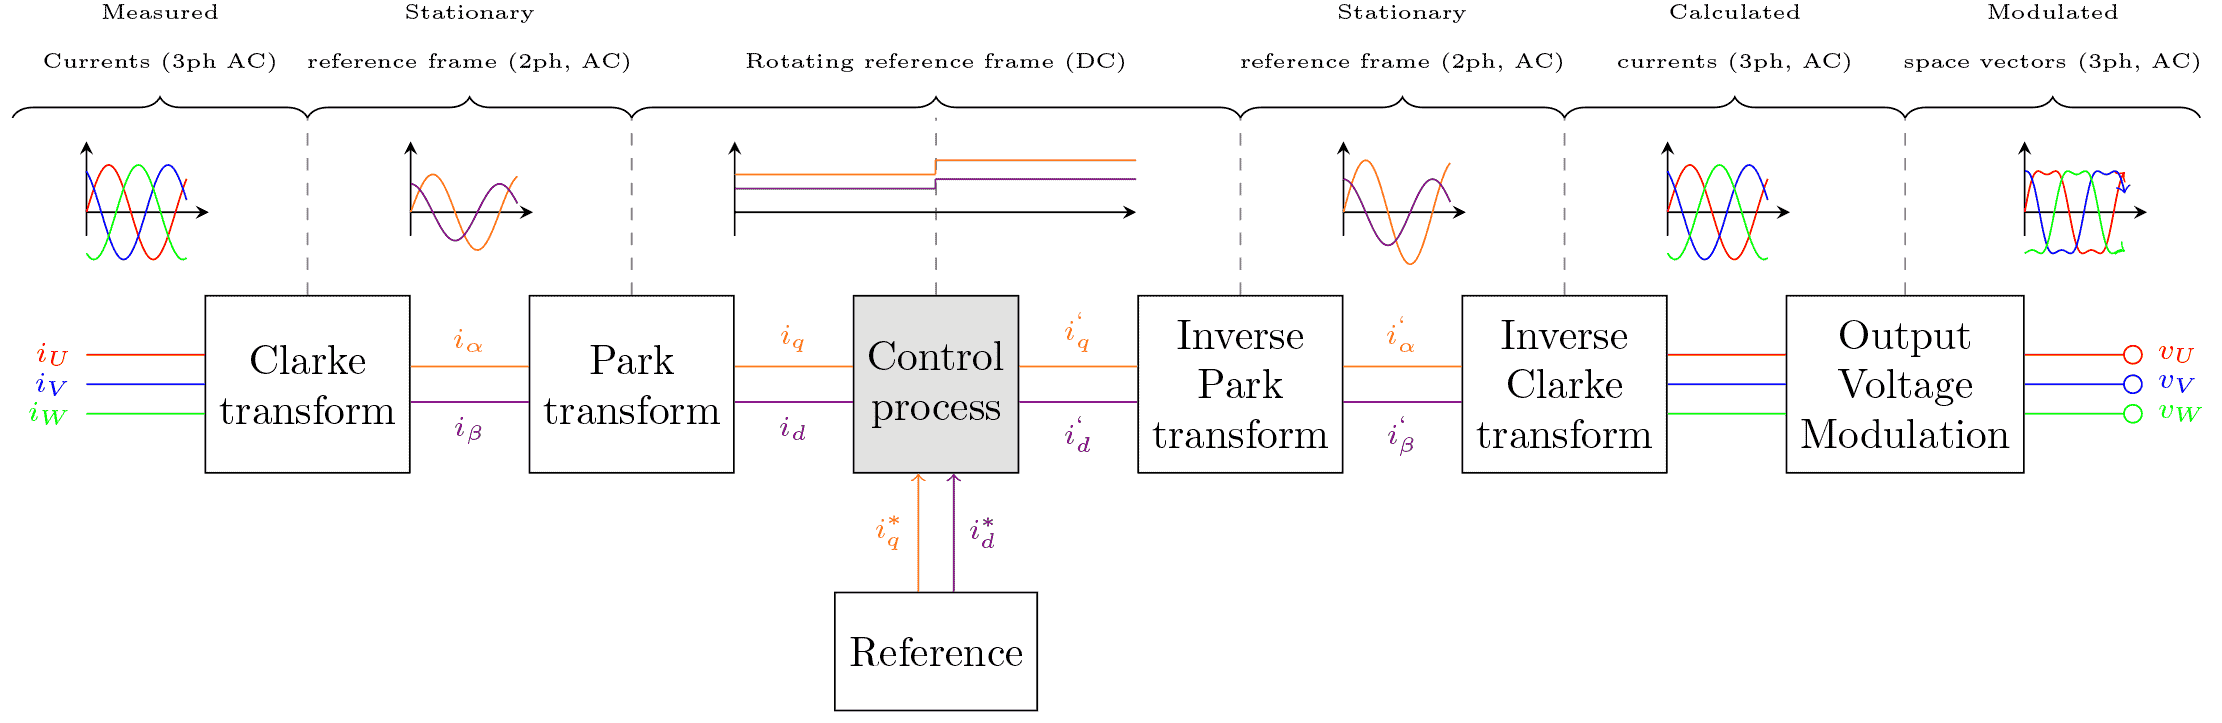 The basic workflow of vector control. Note that the voltage output is based on SV-PWM with third harmonic injection which is causing the non-sinusoidal shape. This technique will be explained in a separate article.